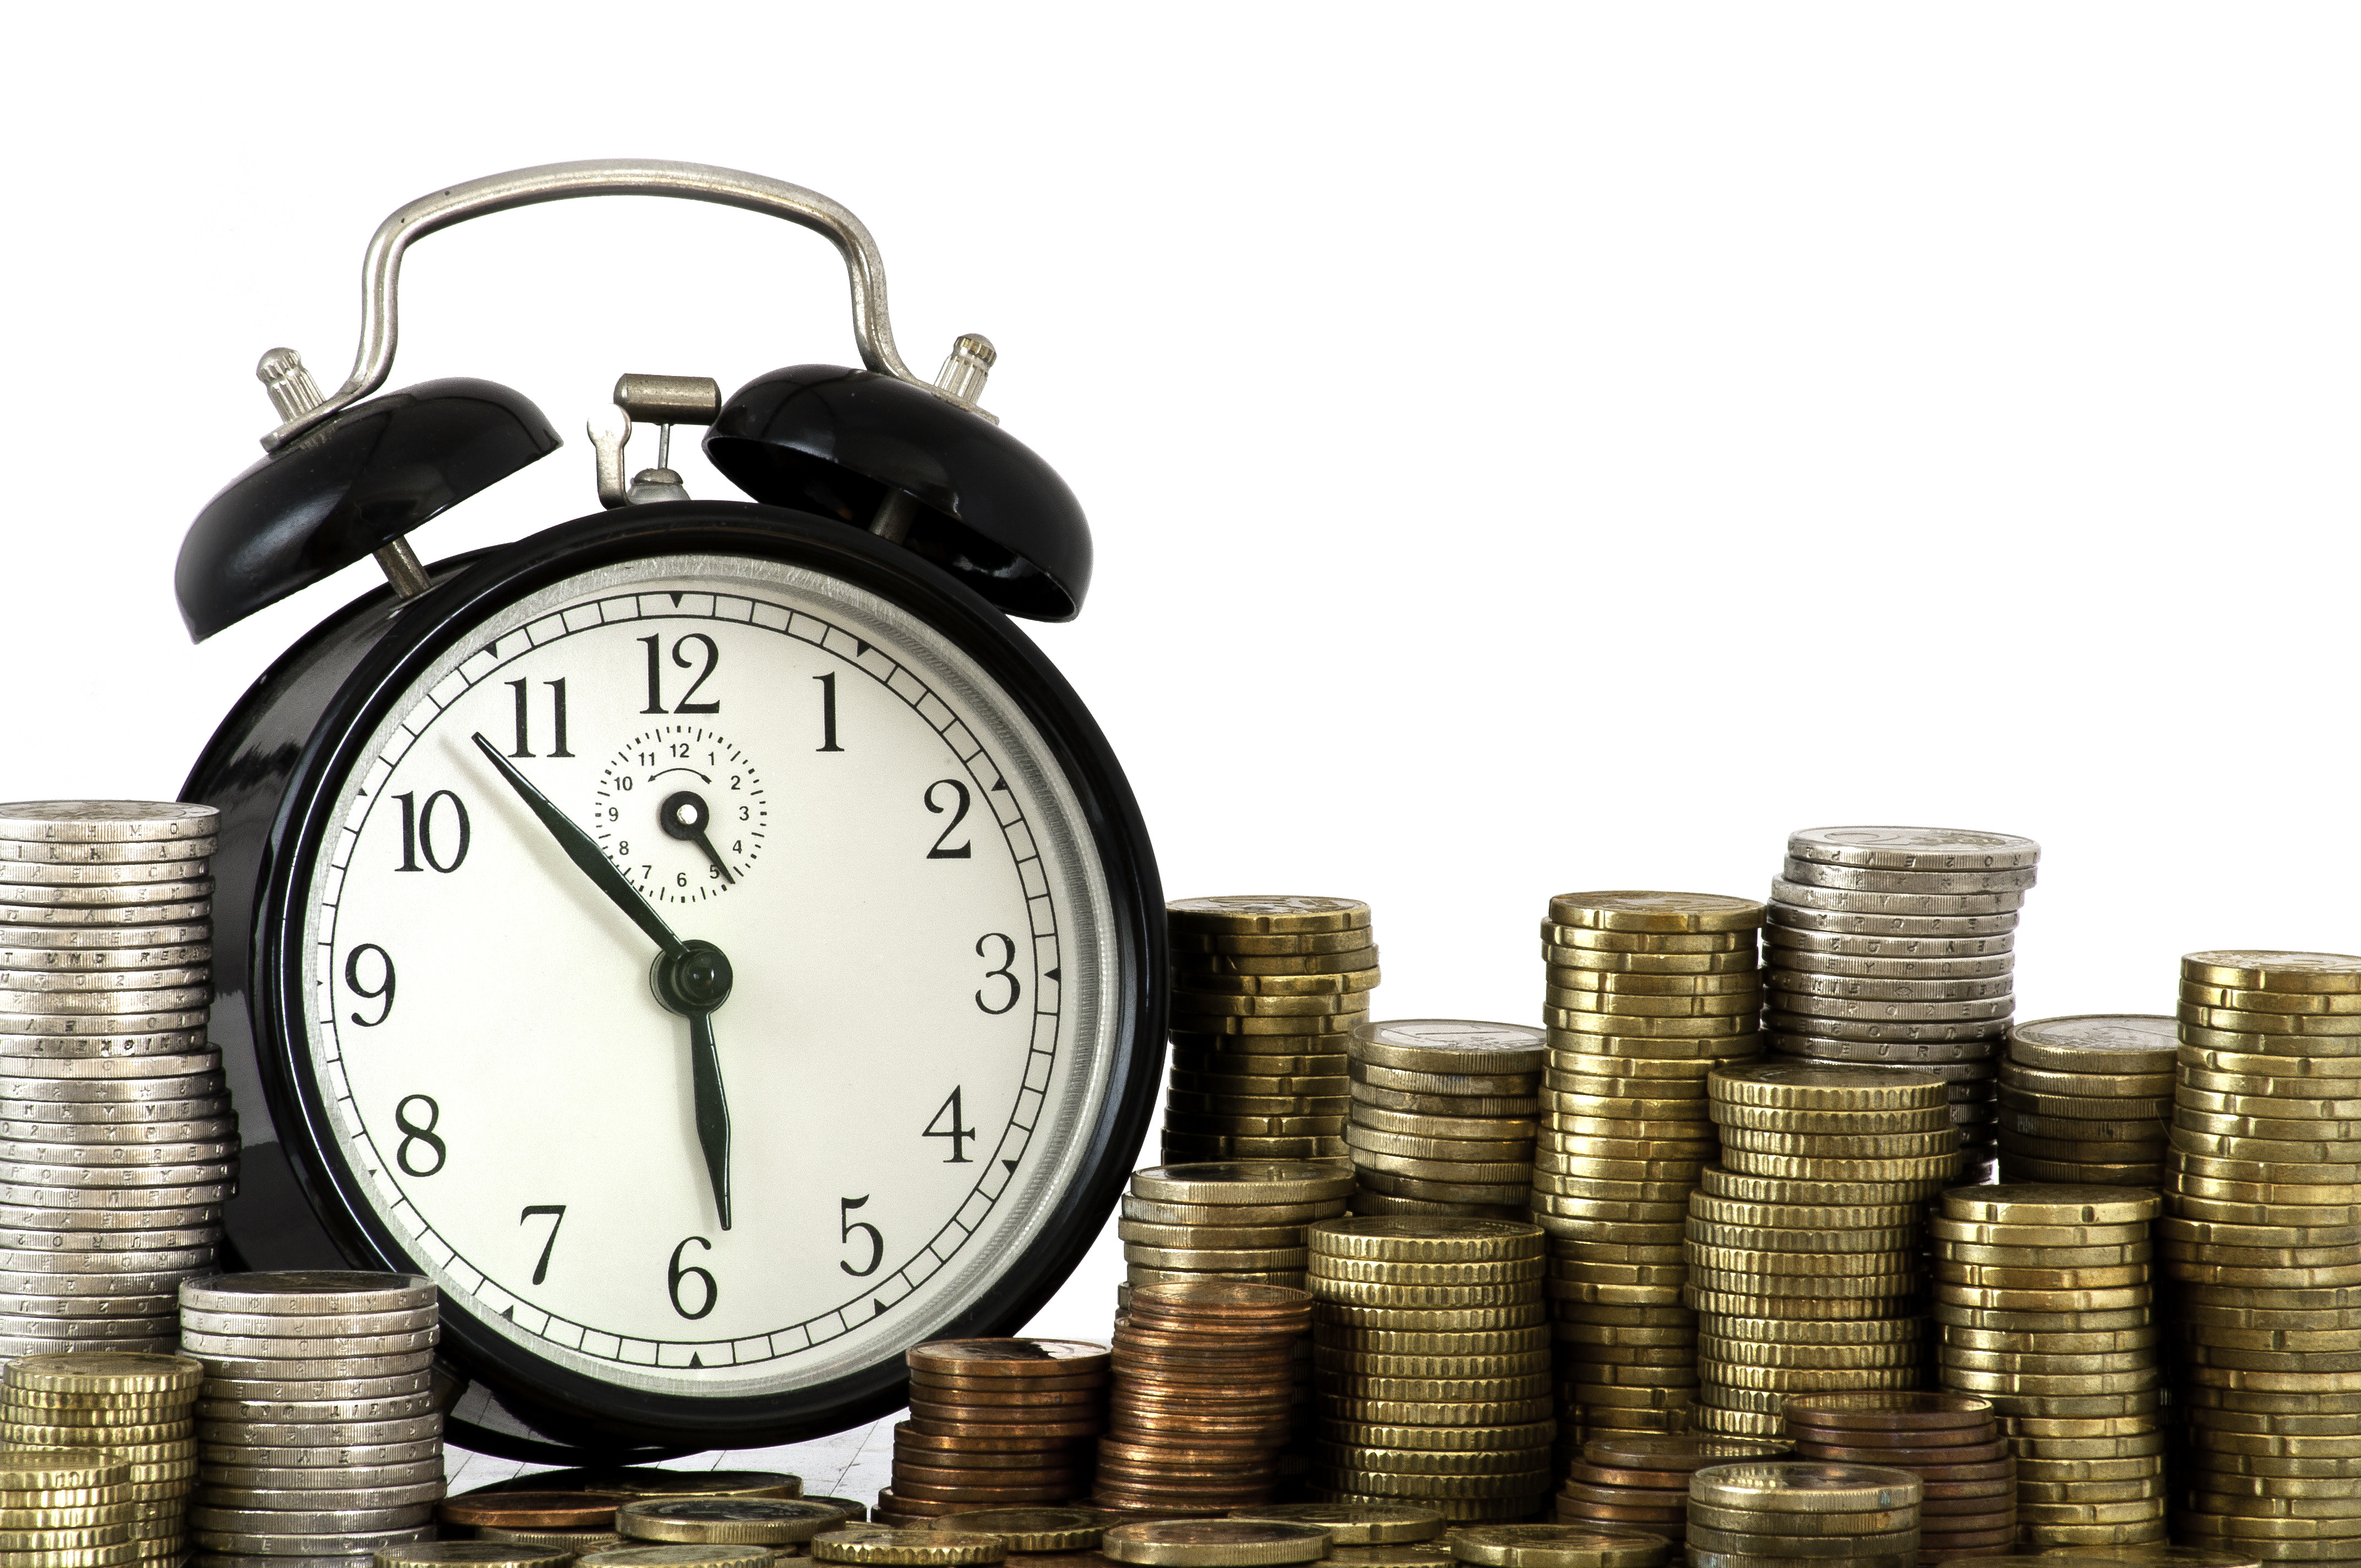 time-is-money-concept-alarm-clock-and-lots-of-euro-coins_fkoftjA_